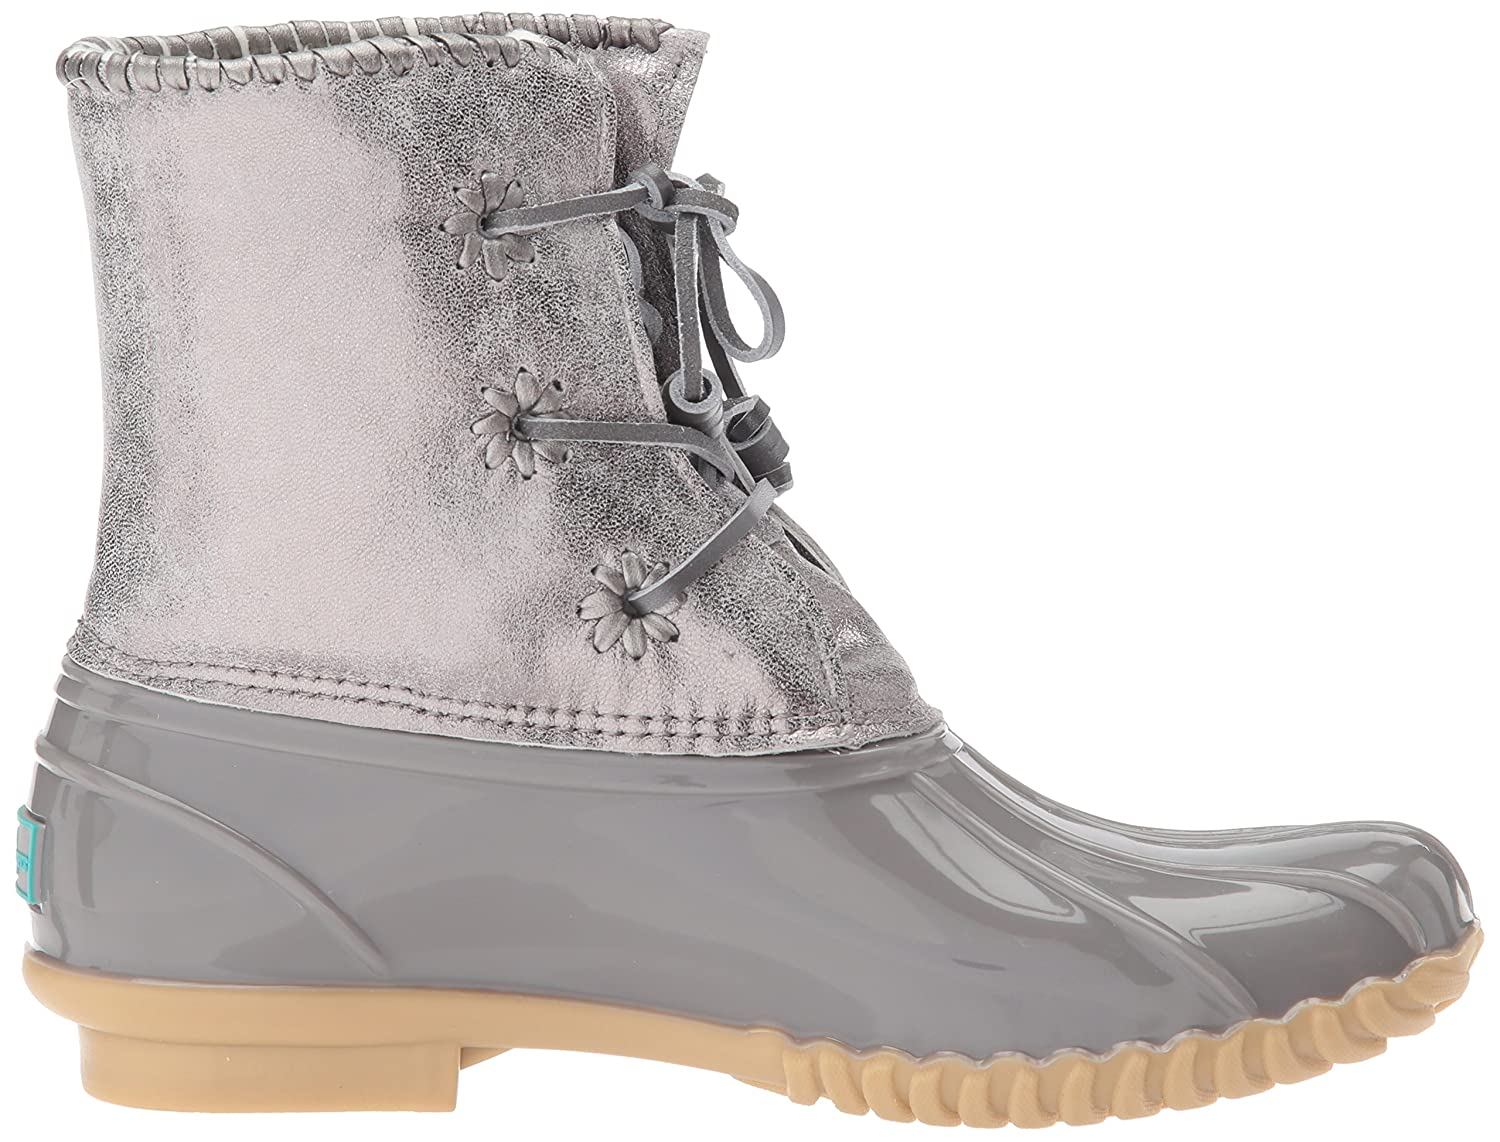 Jack Rogers Women's Chloe Metallic Rain Boot B06X9NR8ZS 11 B(M) US|Dove Grey